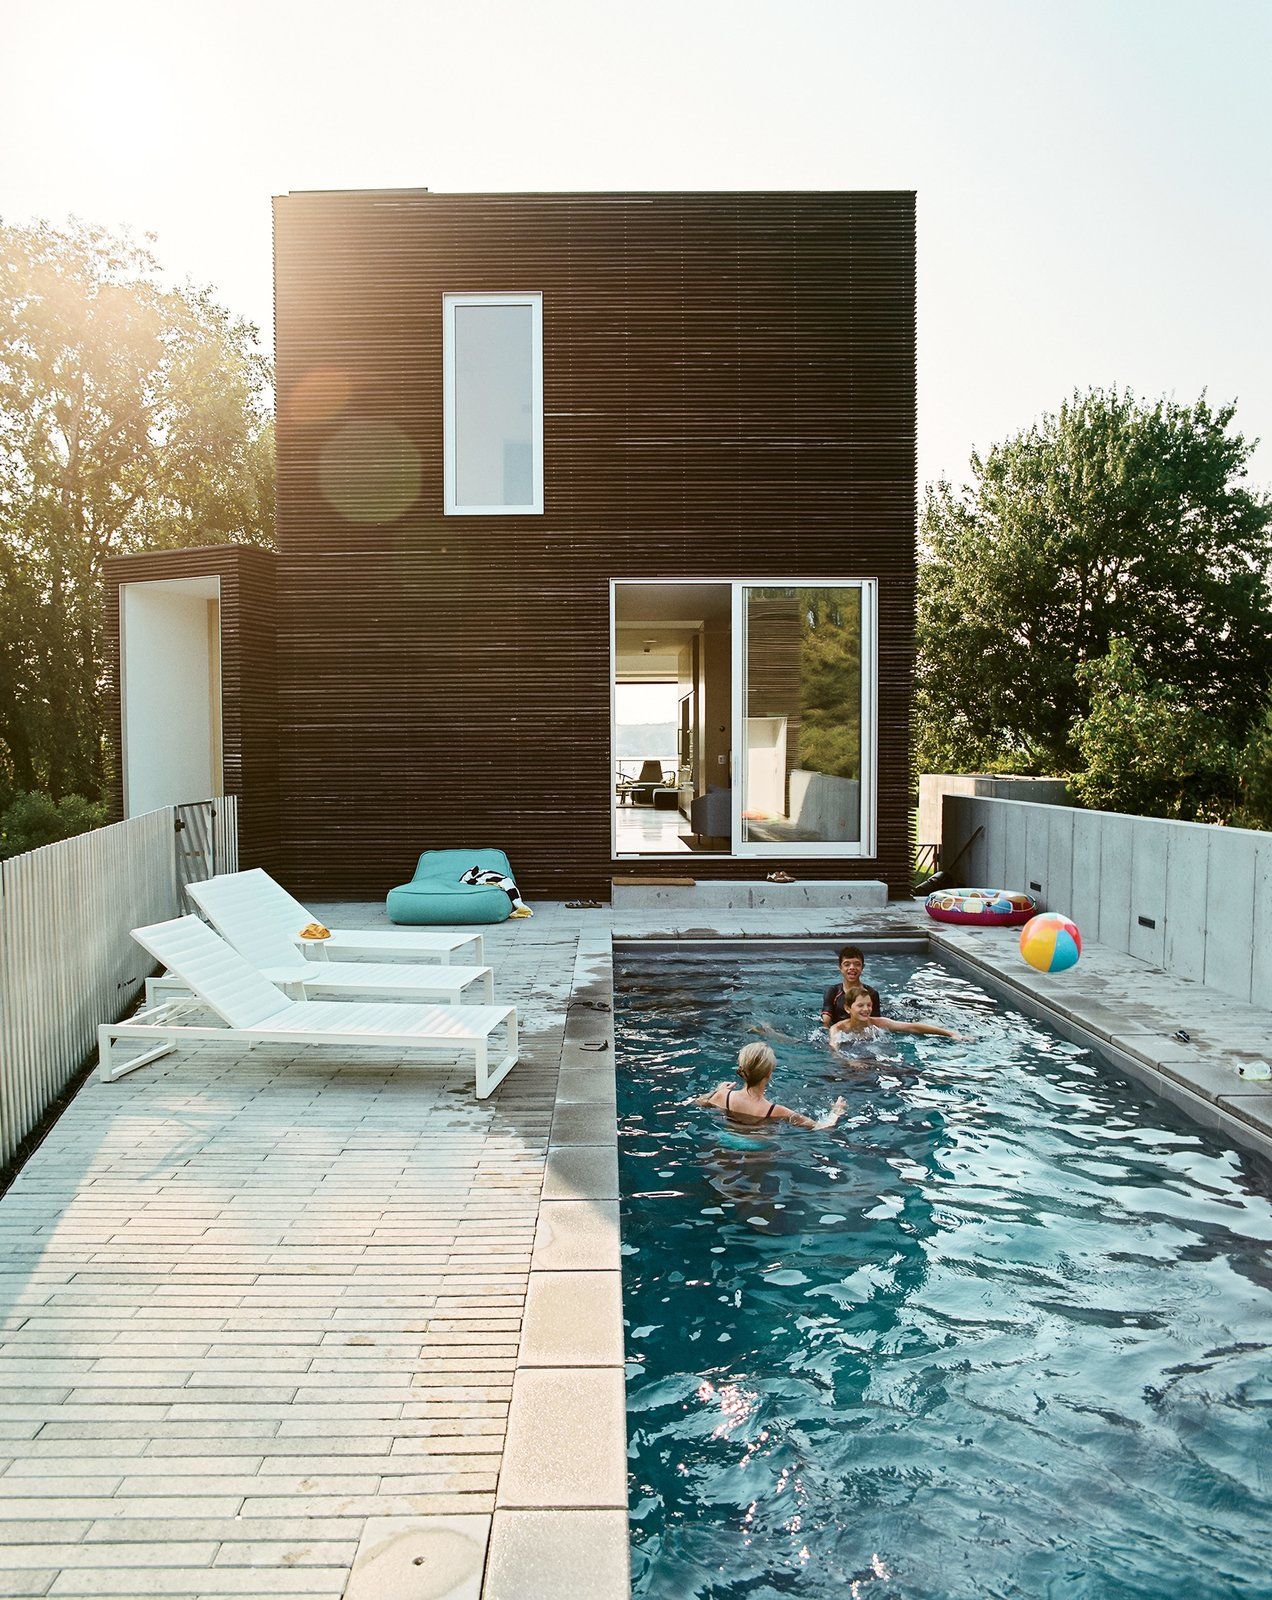 The east-facing pool terrace is outfitted with a series of Eos lounge chairs (and plenty of inflatable swim toys). Tagged: Concrete Patio, Porch, Deck, Swimming Pools, Tubs, Shower, Small Pools, Tubs, Shower, Lap Pools, Tubs, Shower, Back Yard, Exterior, House, and Wood Siding Material.  Modern Pool Design by Dwell from An Idyllic Rhode Island Summer Cottage Is the Perfect Escape for a New York Family